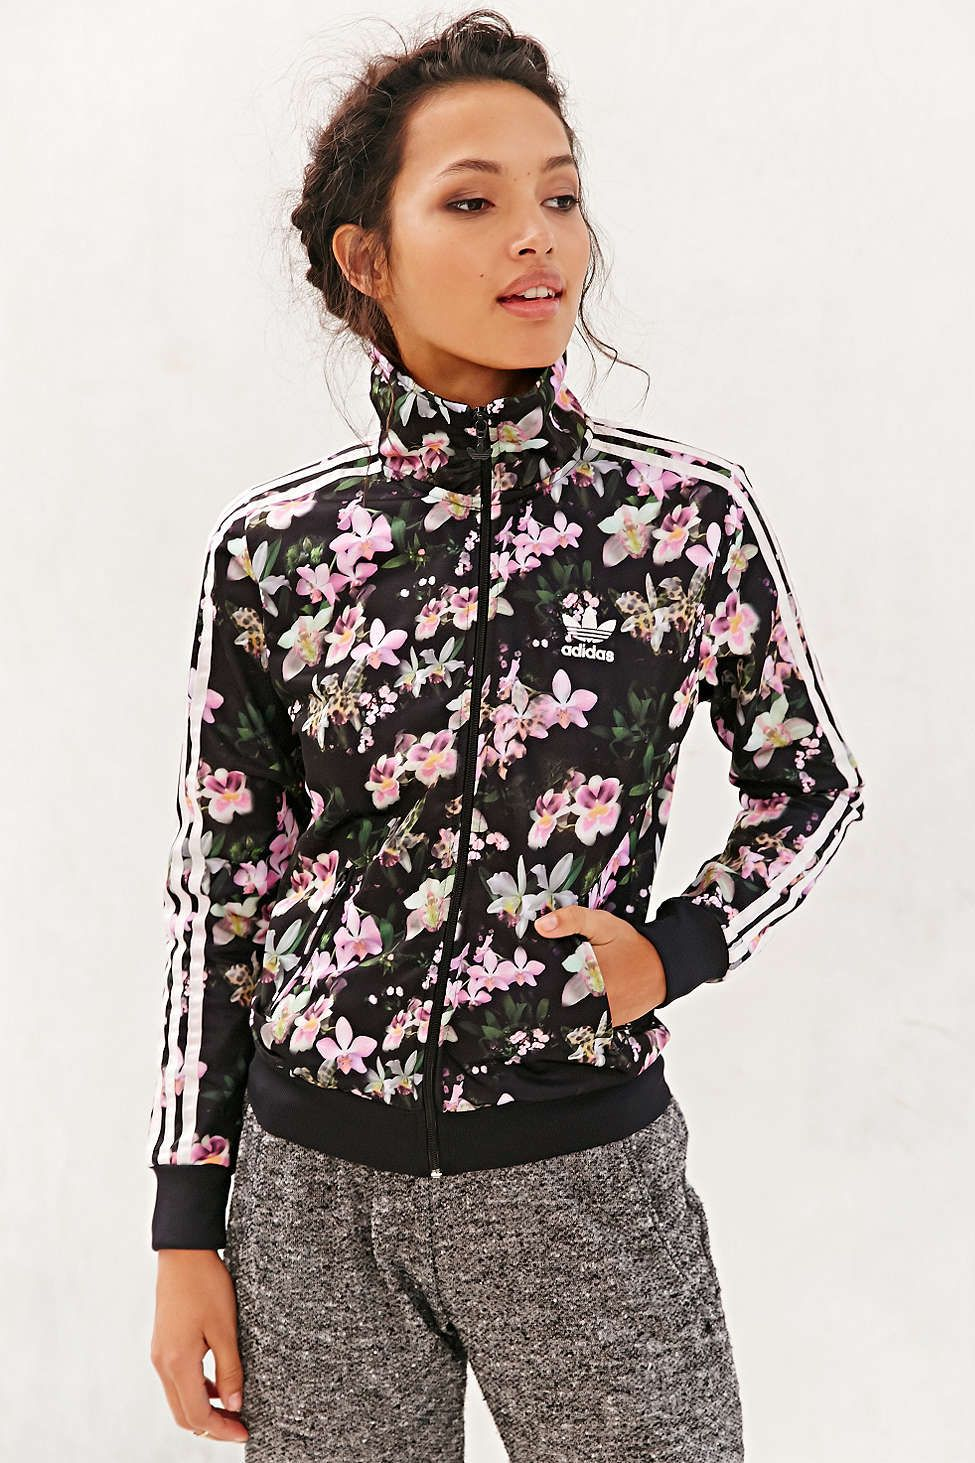 Adidas orchid track jacket urban outfitters outerwear for Adidas floral shirt urban outfitters